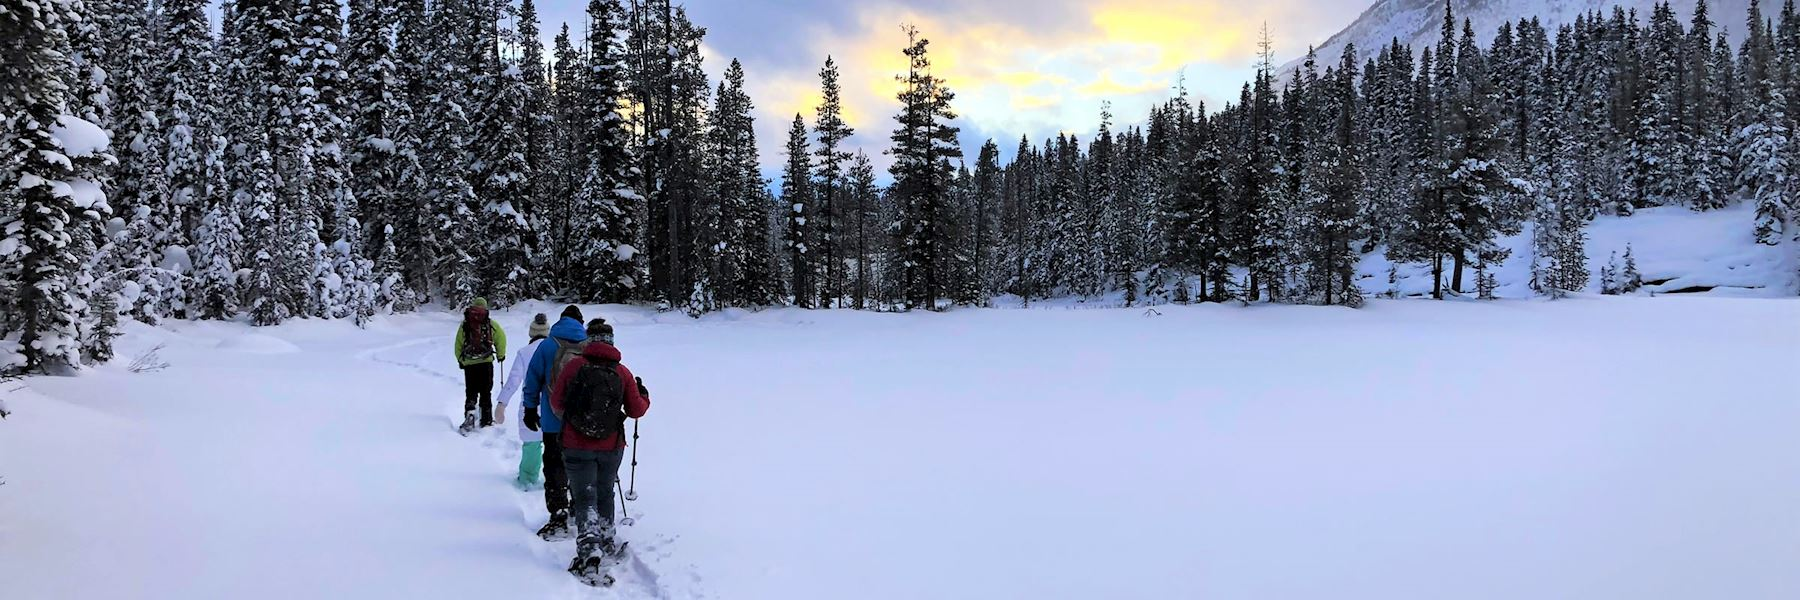 Snowshoe adventure at the Continental Divide